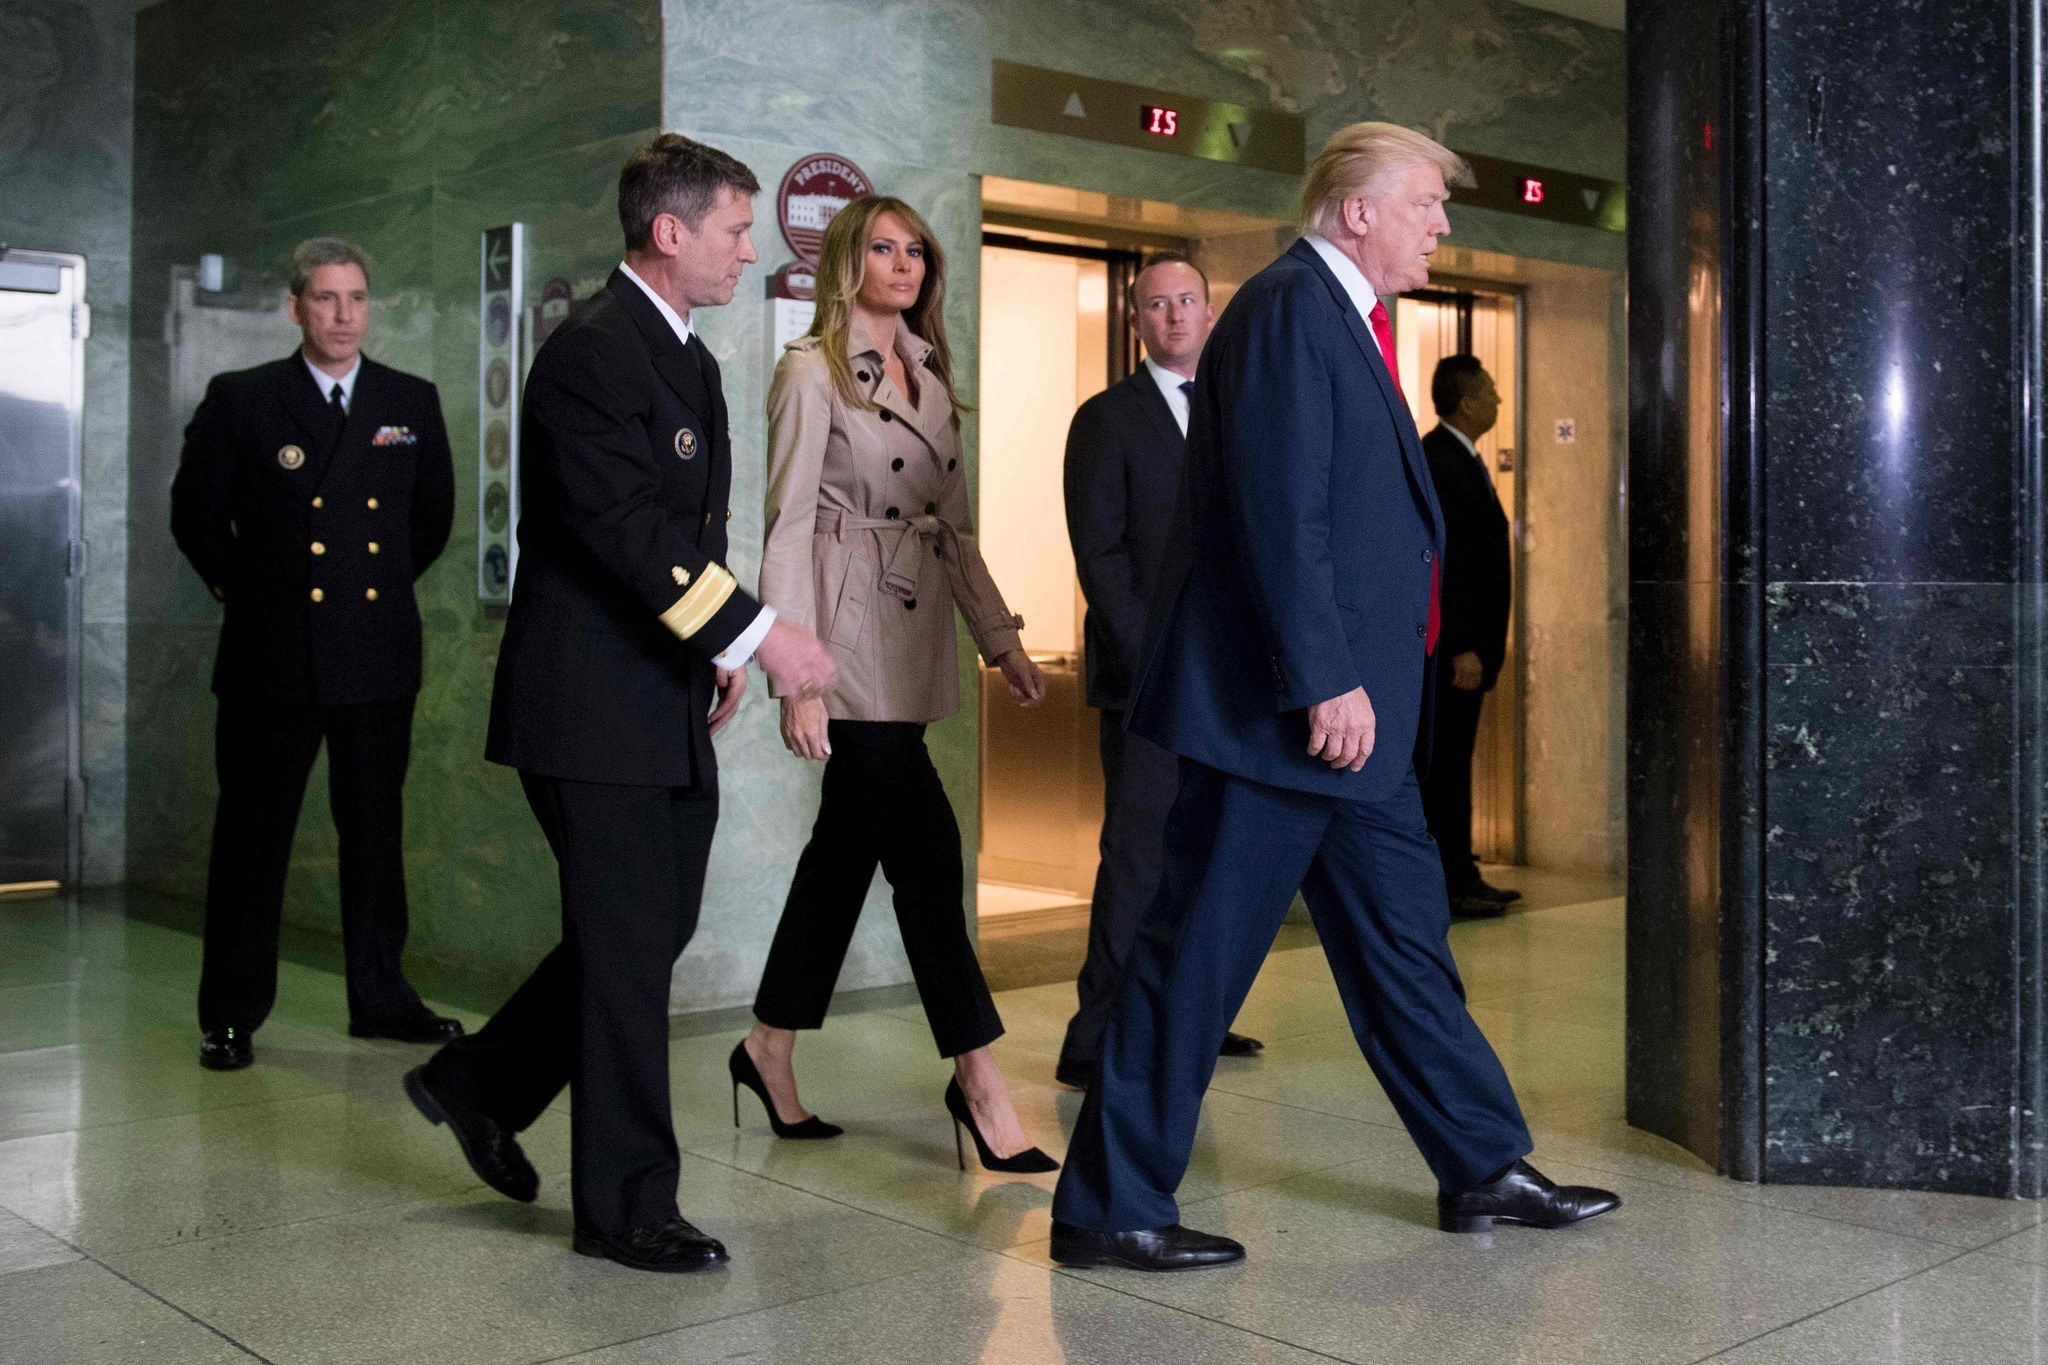 (Jim Watson / AFP/Getty Images)